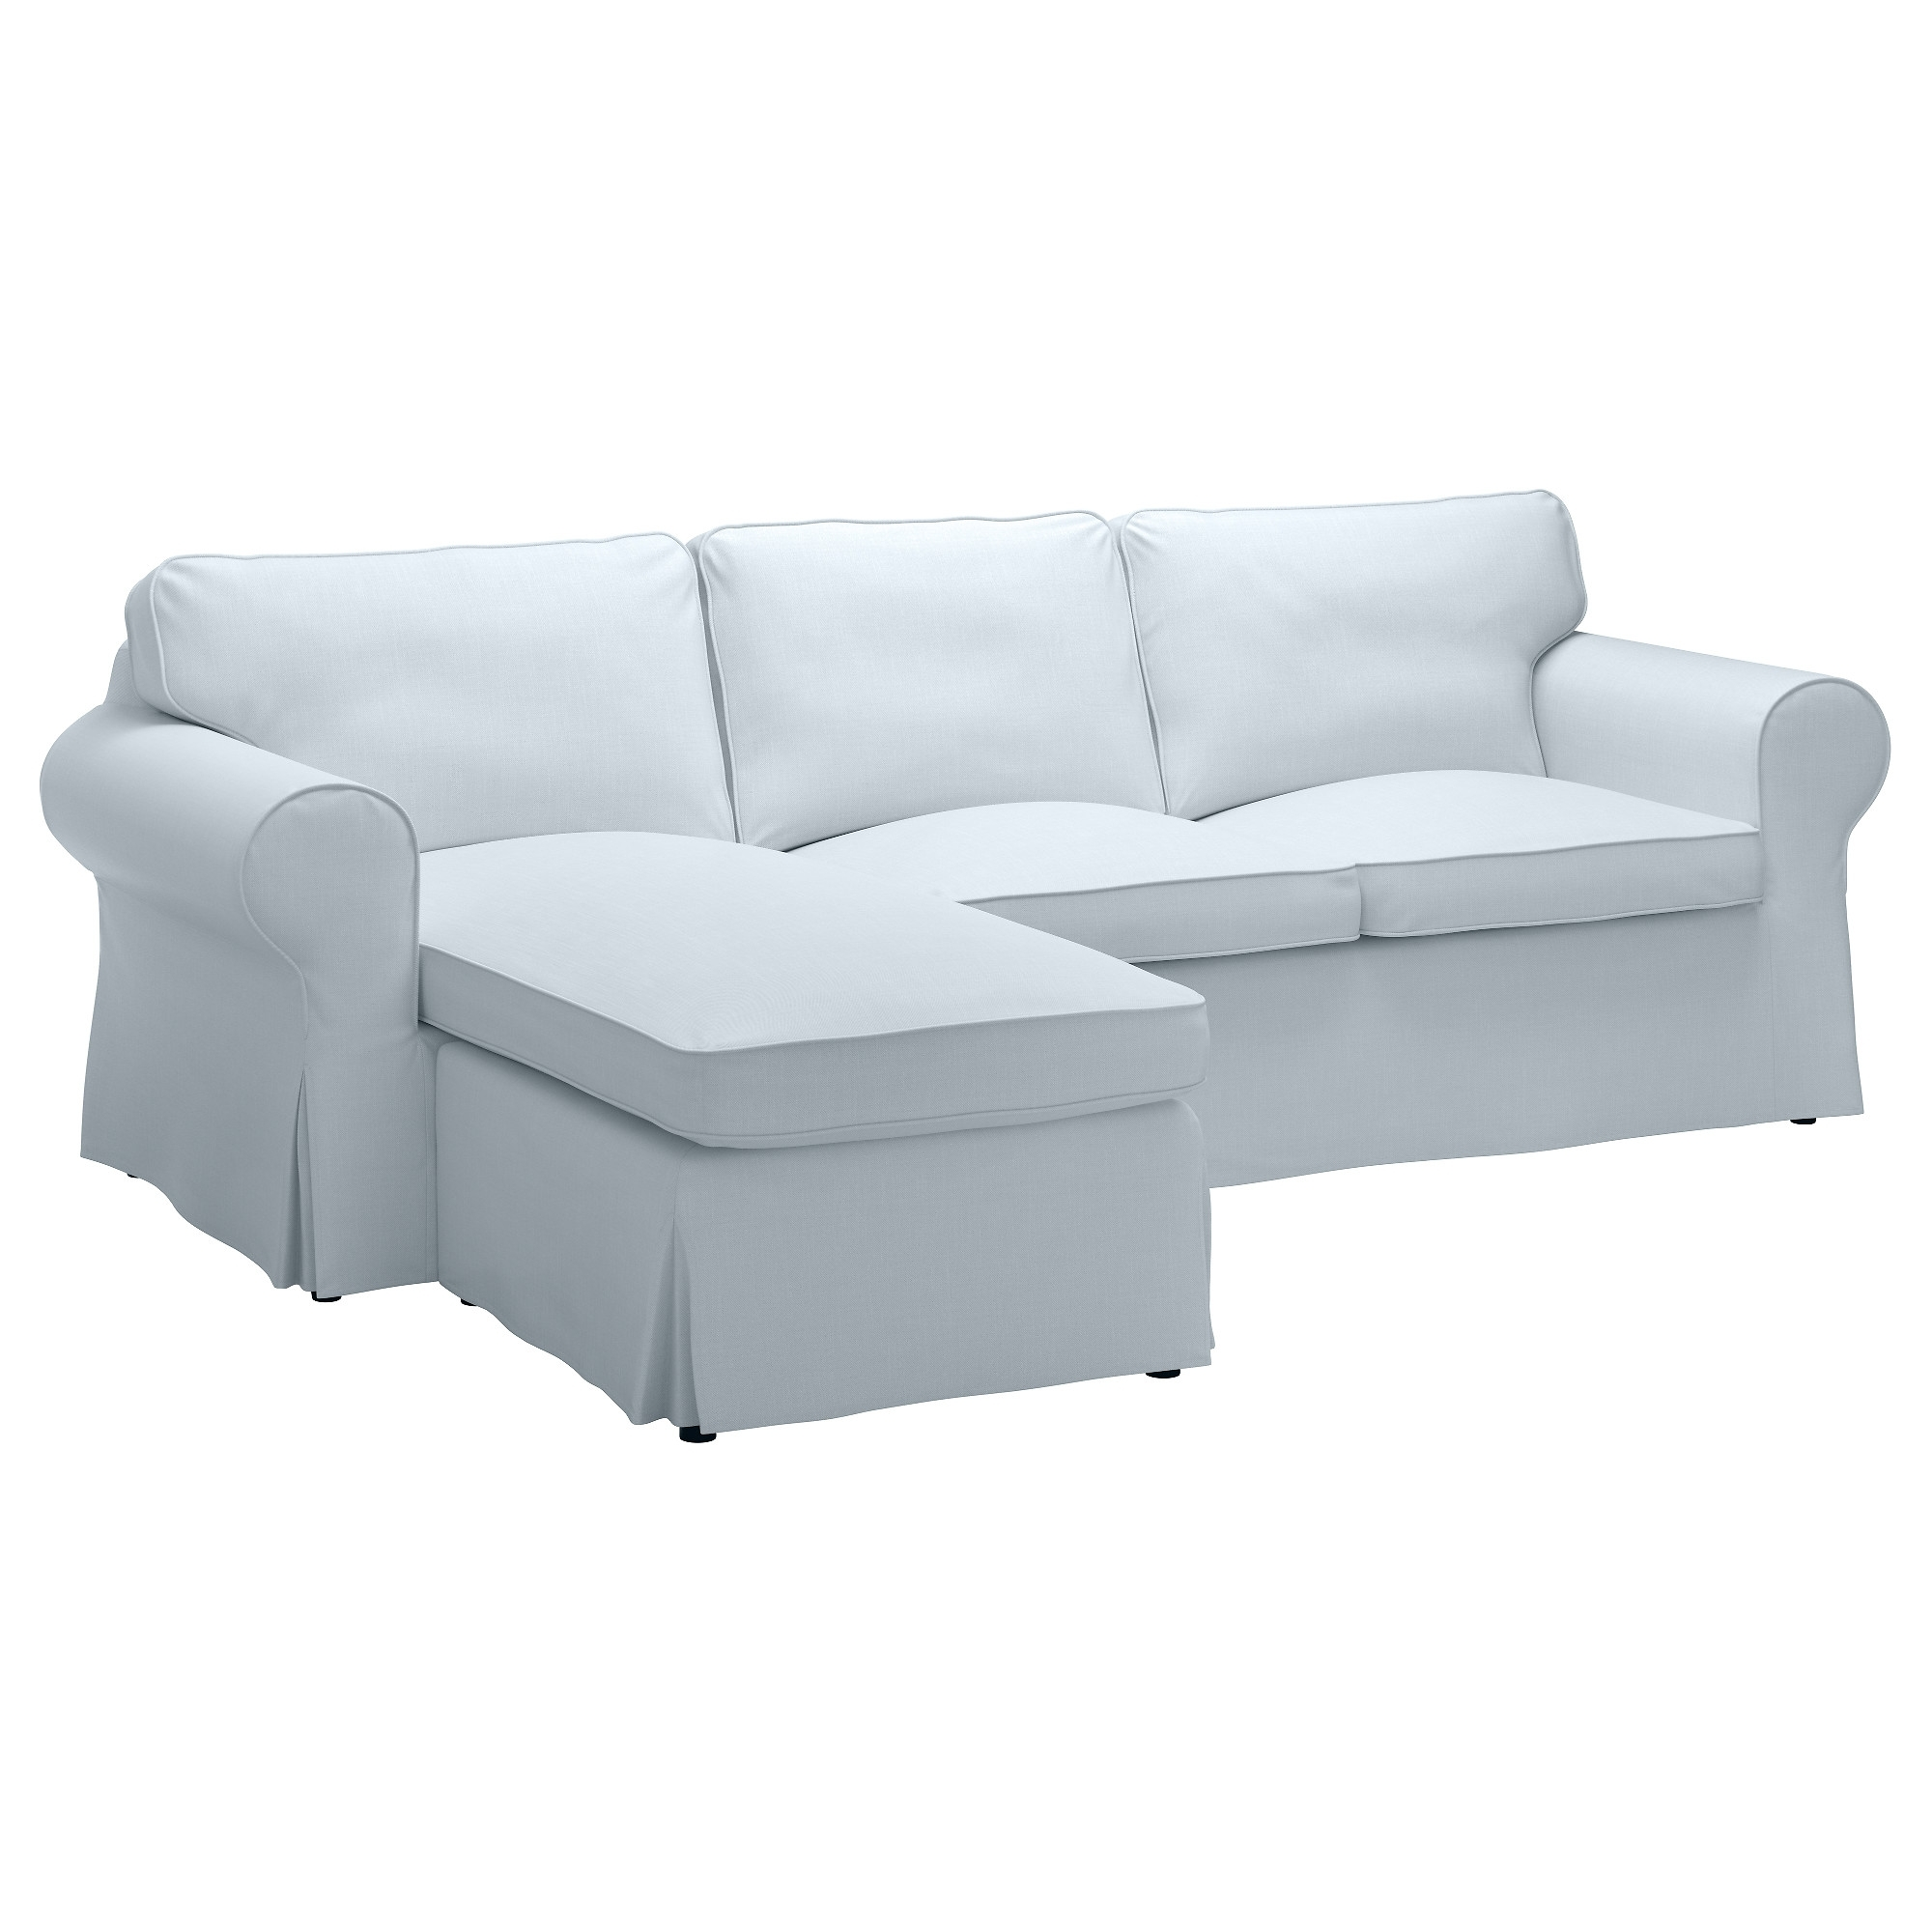 Best And Newest Small Sectional Sofa Ikea 80 With Small Sectional Sofa Ikea  Within Sectional Sofas